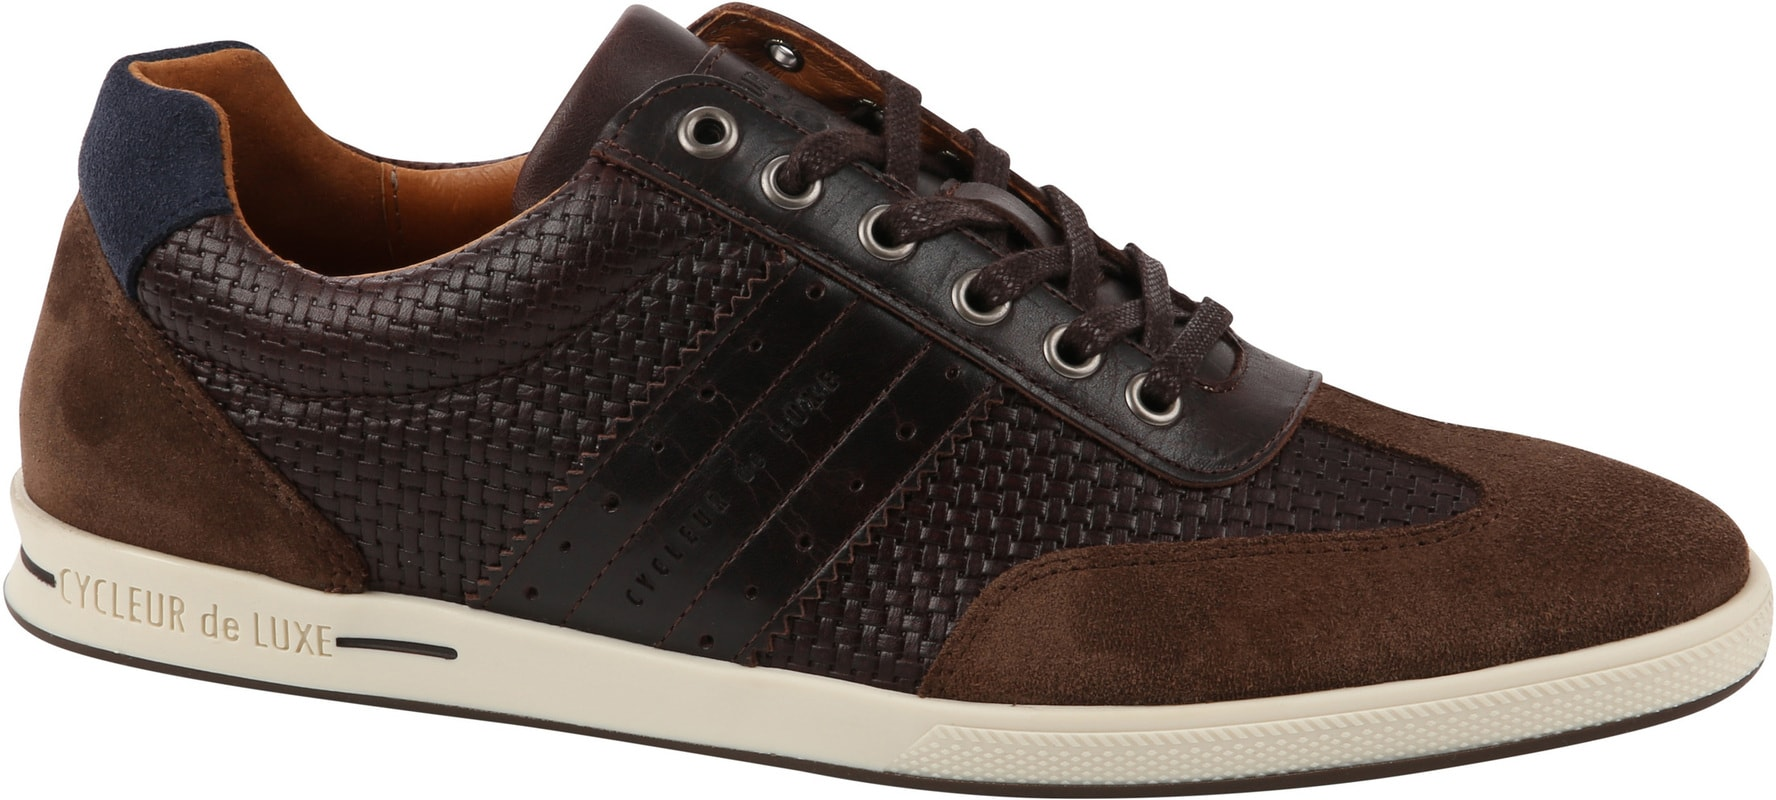 Cycleur de Luxe Sneaker Boom Brown photo 0